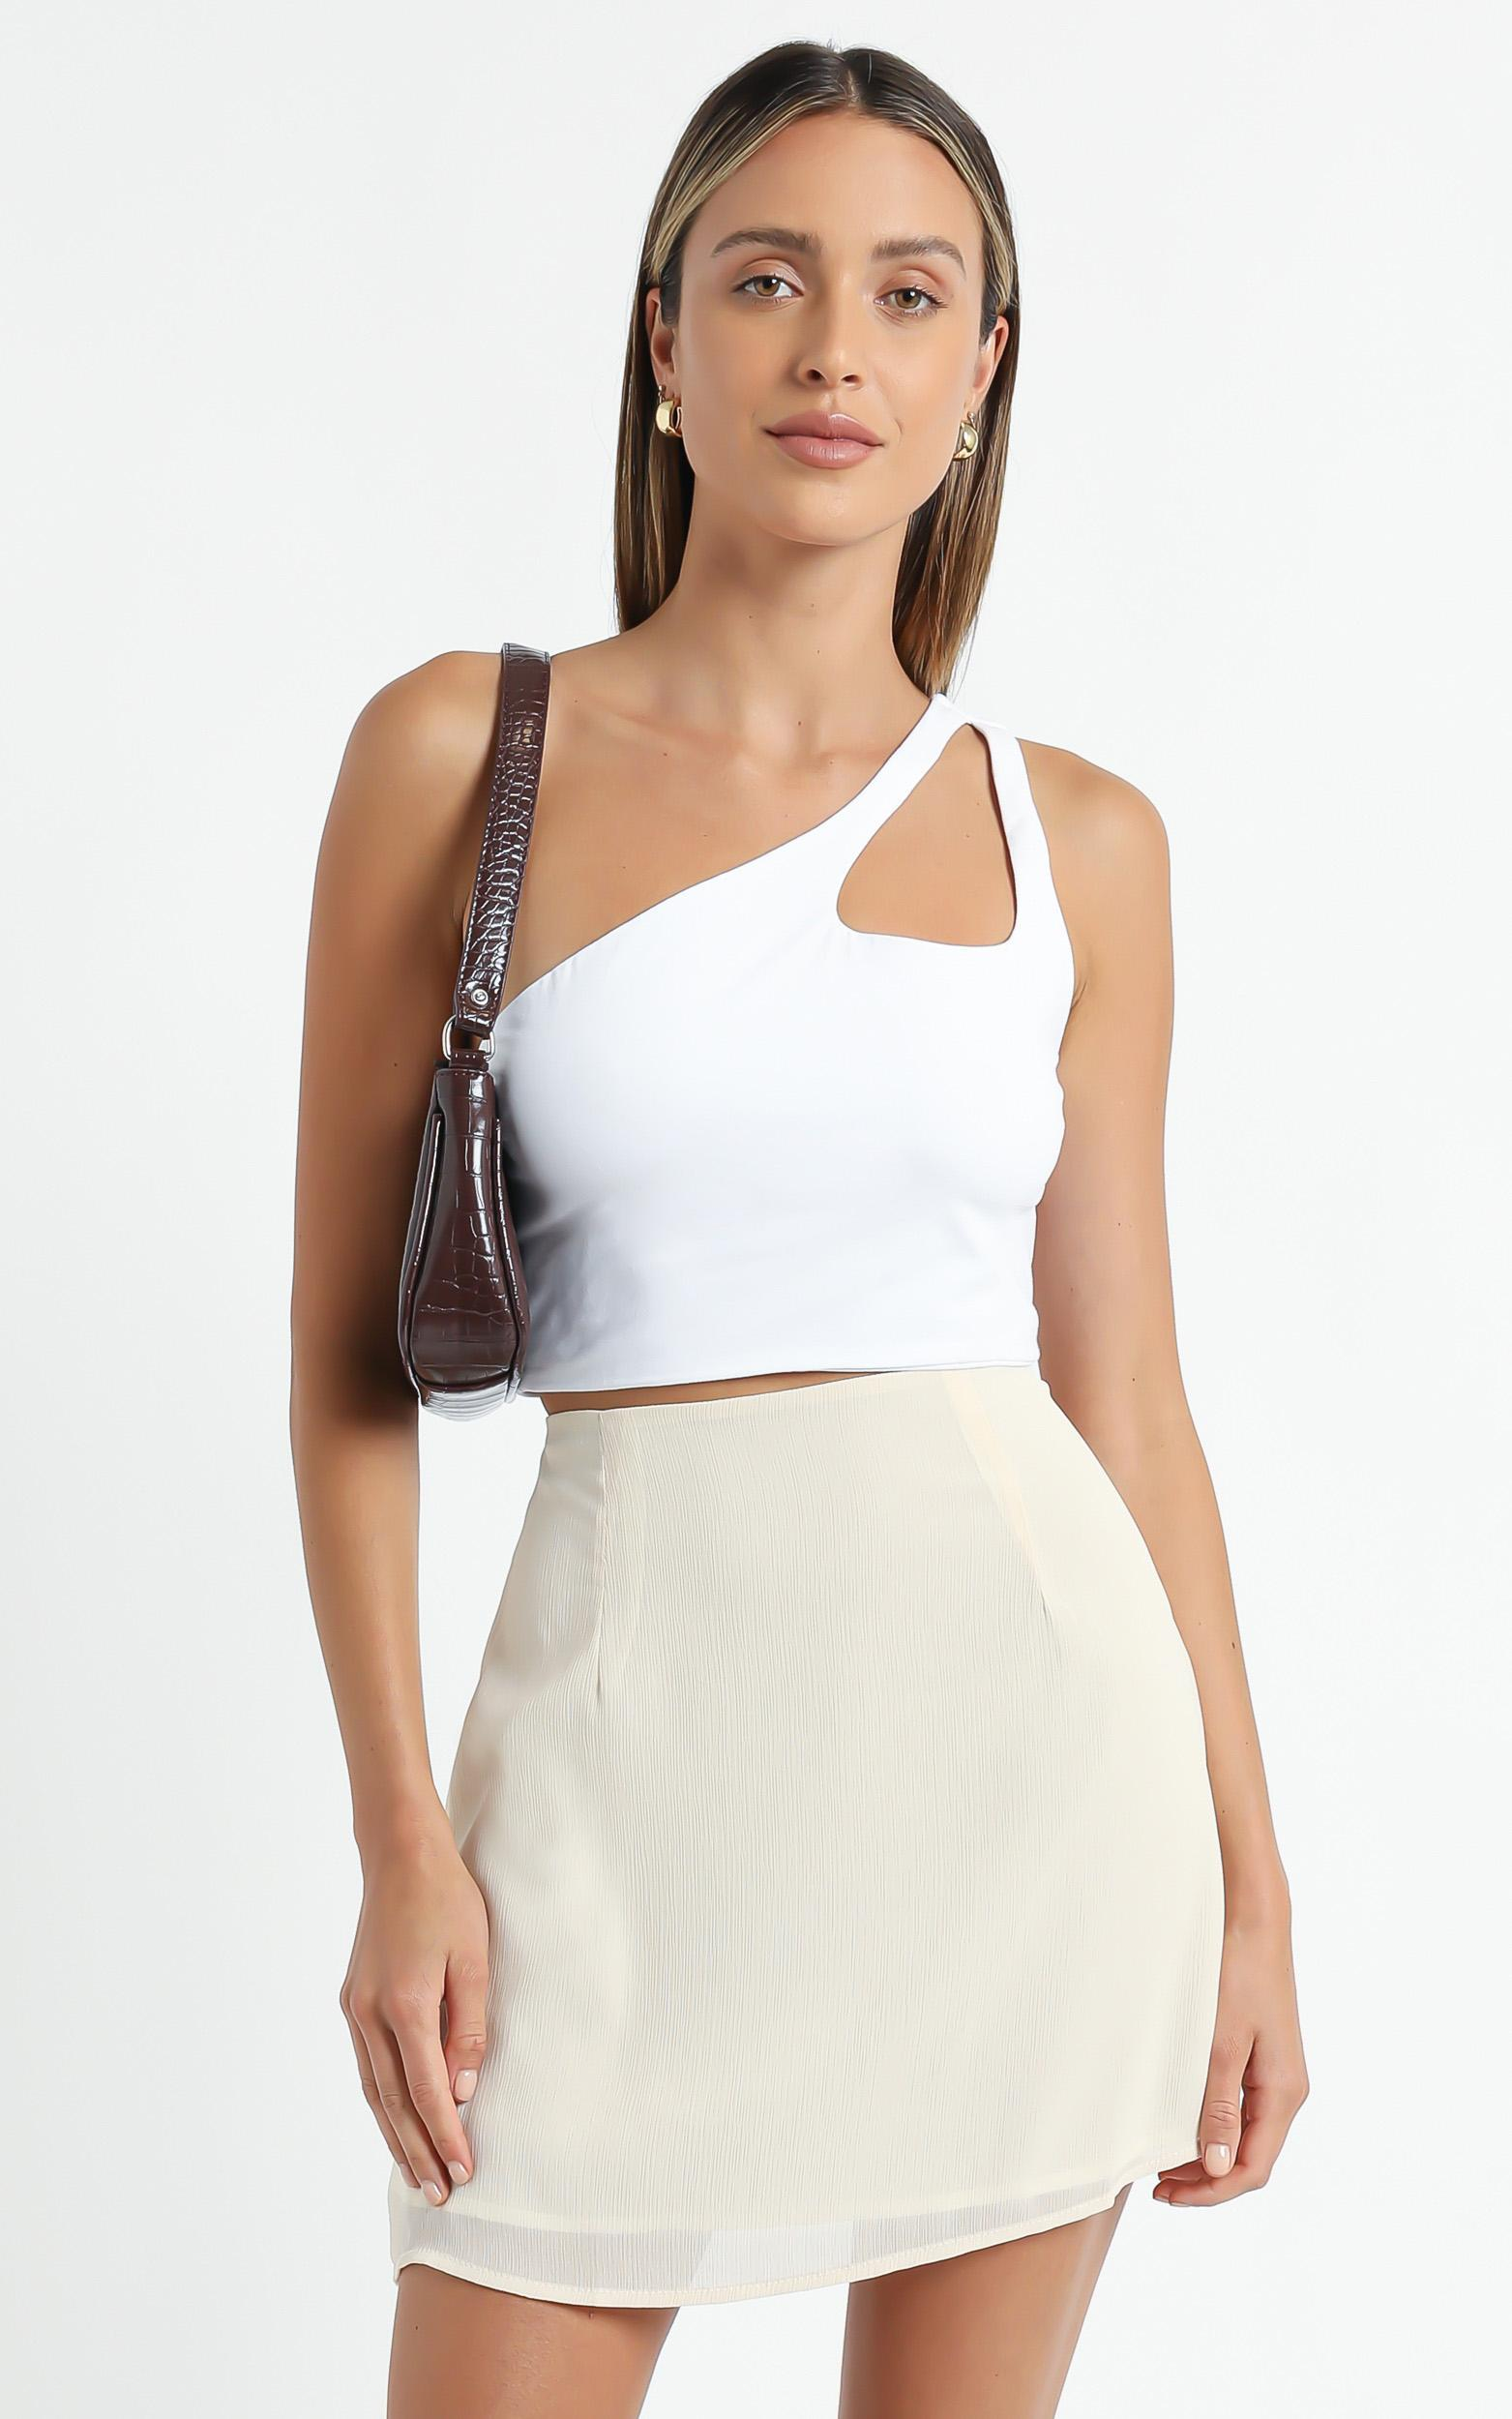 Lilijana Top in White - 6 (XS), White, hi-res image number null